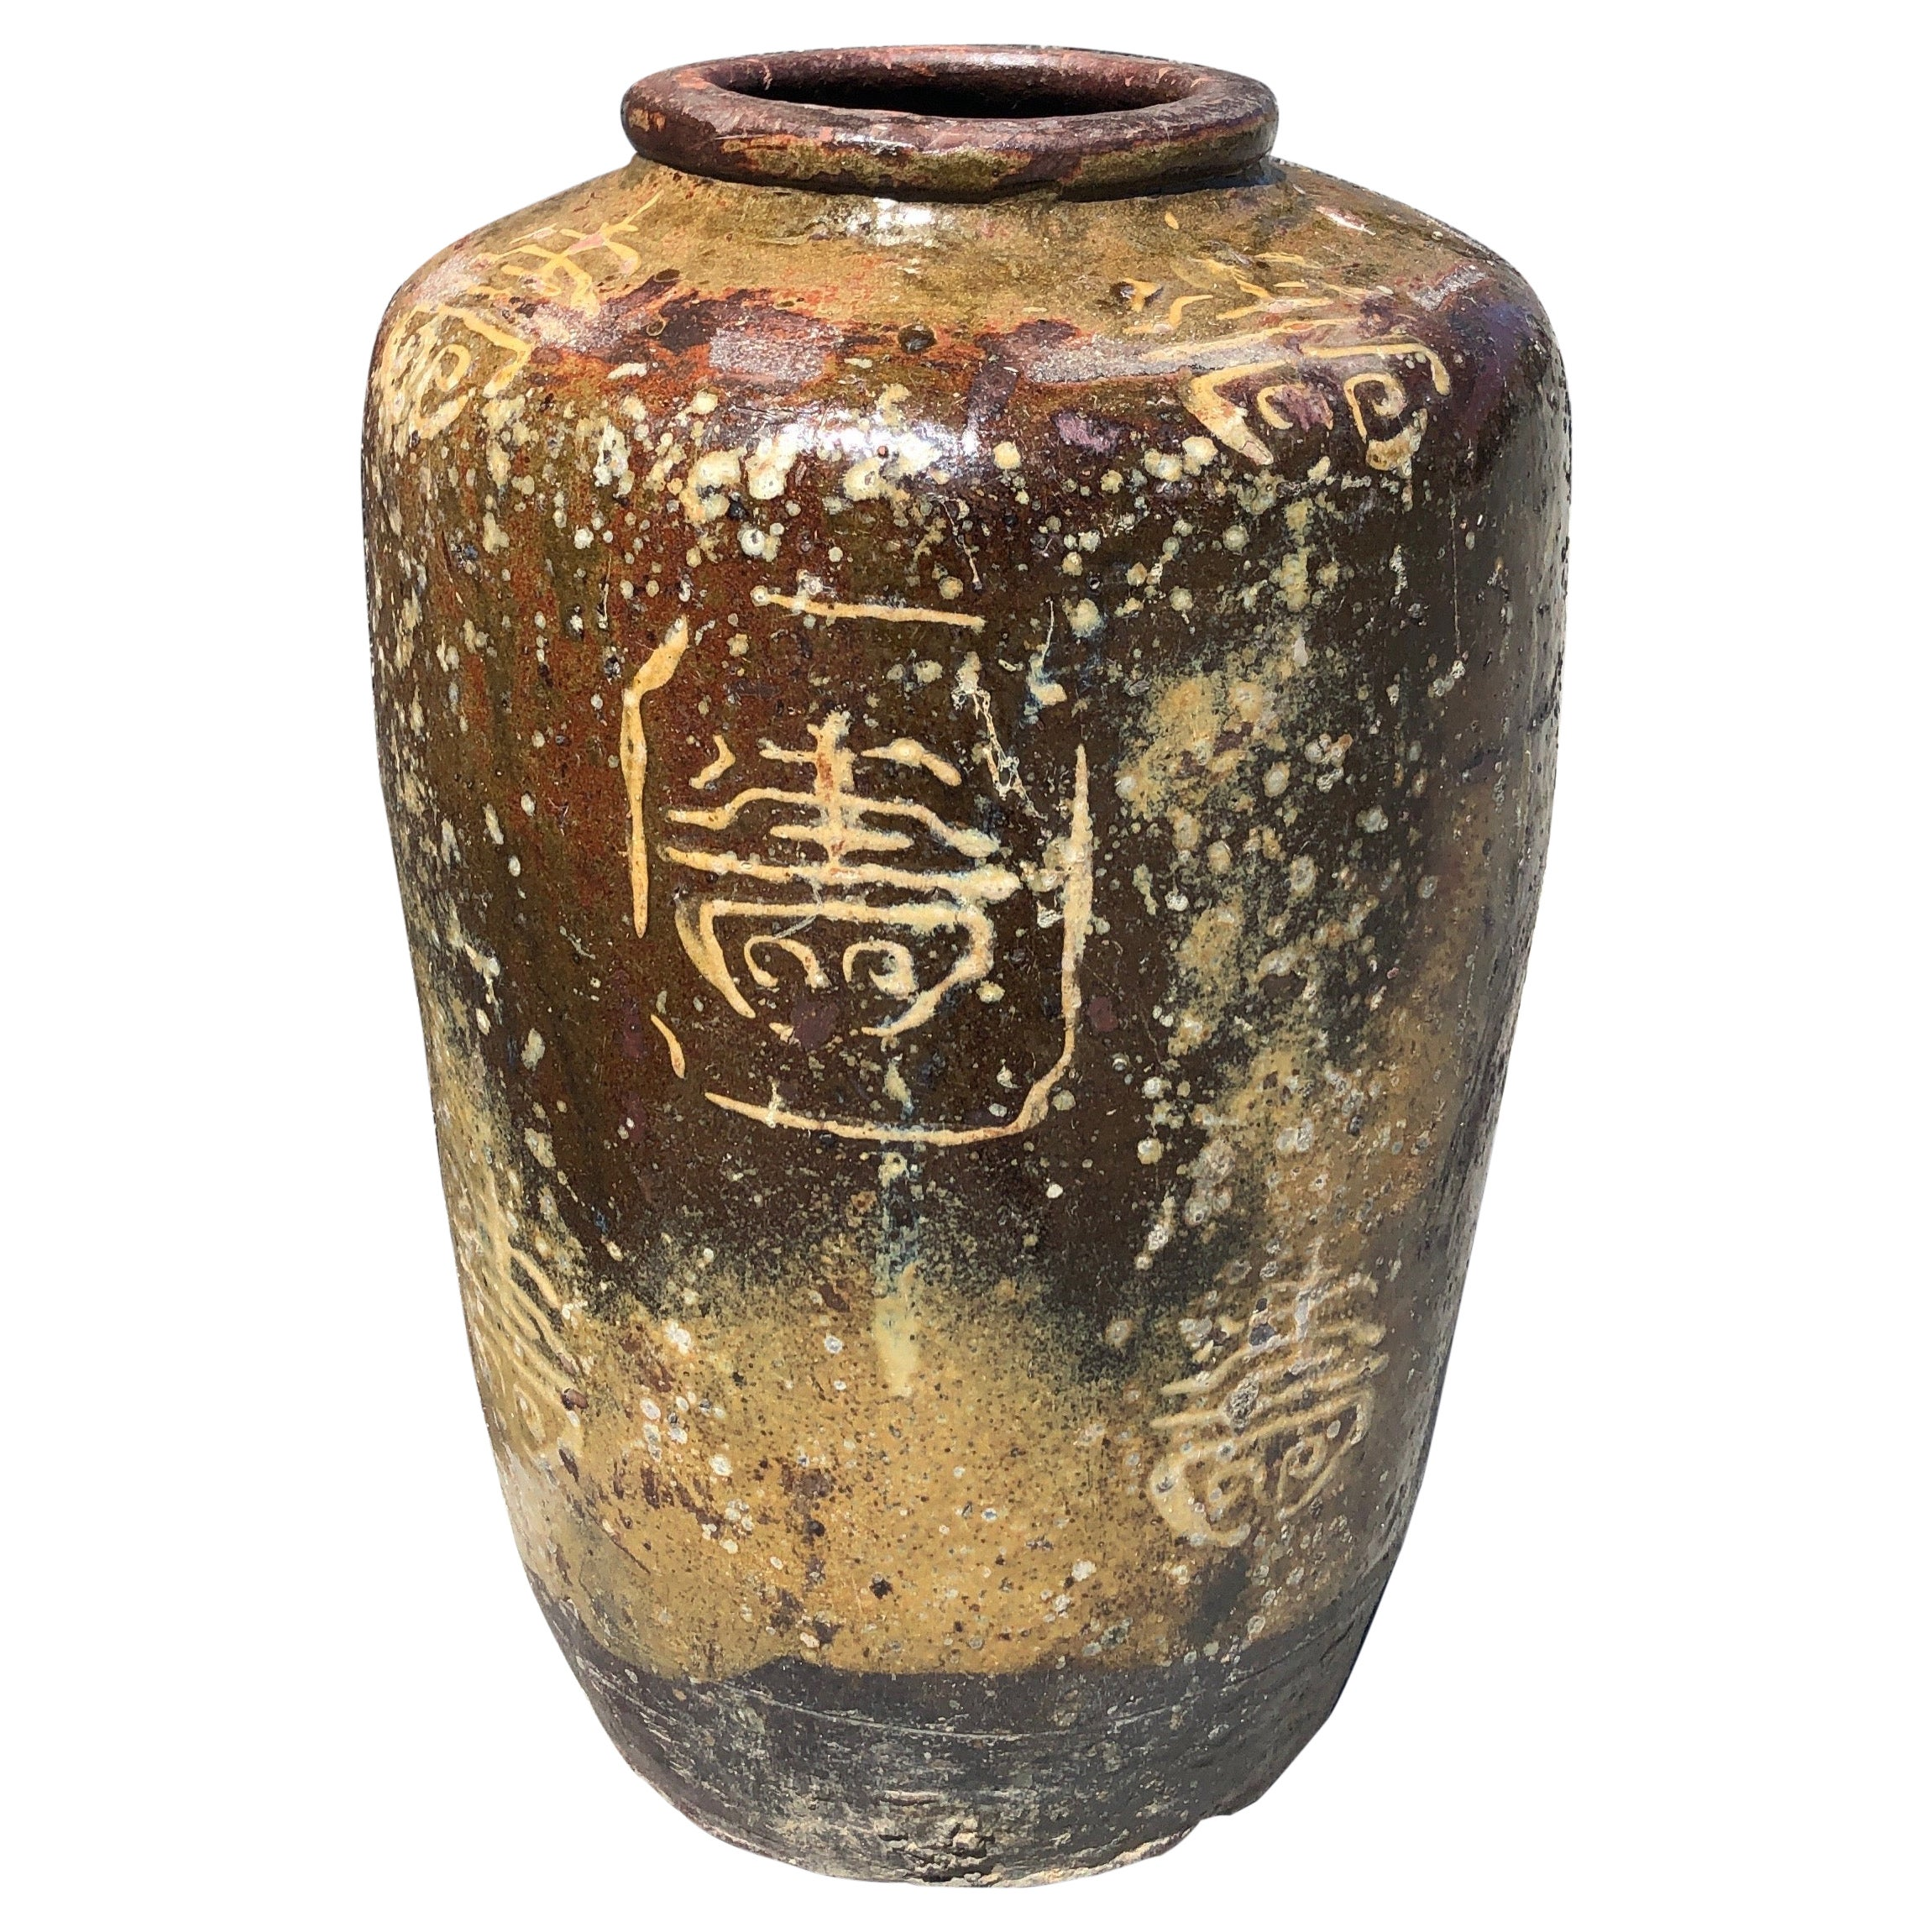 Antique Chinese Ceramic Wine Jar with Bold Calligraphy and Great Wear